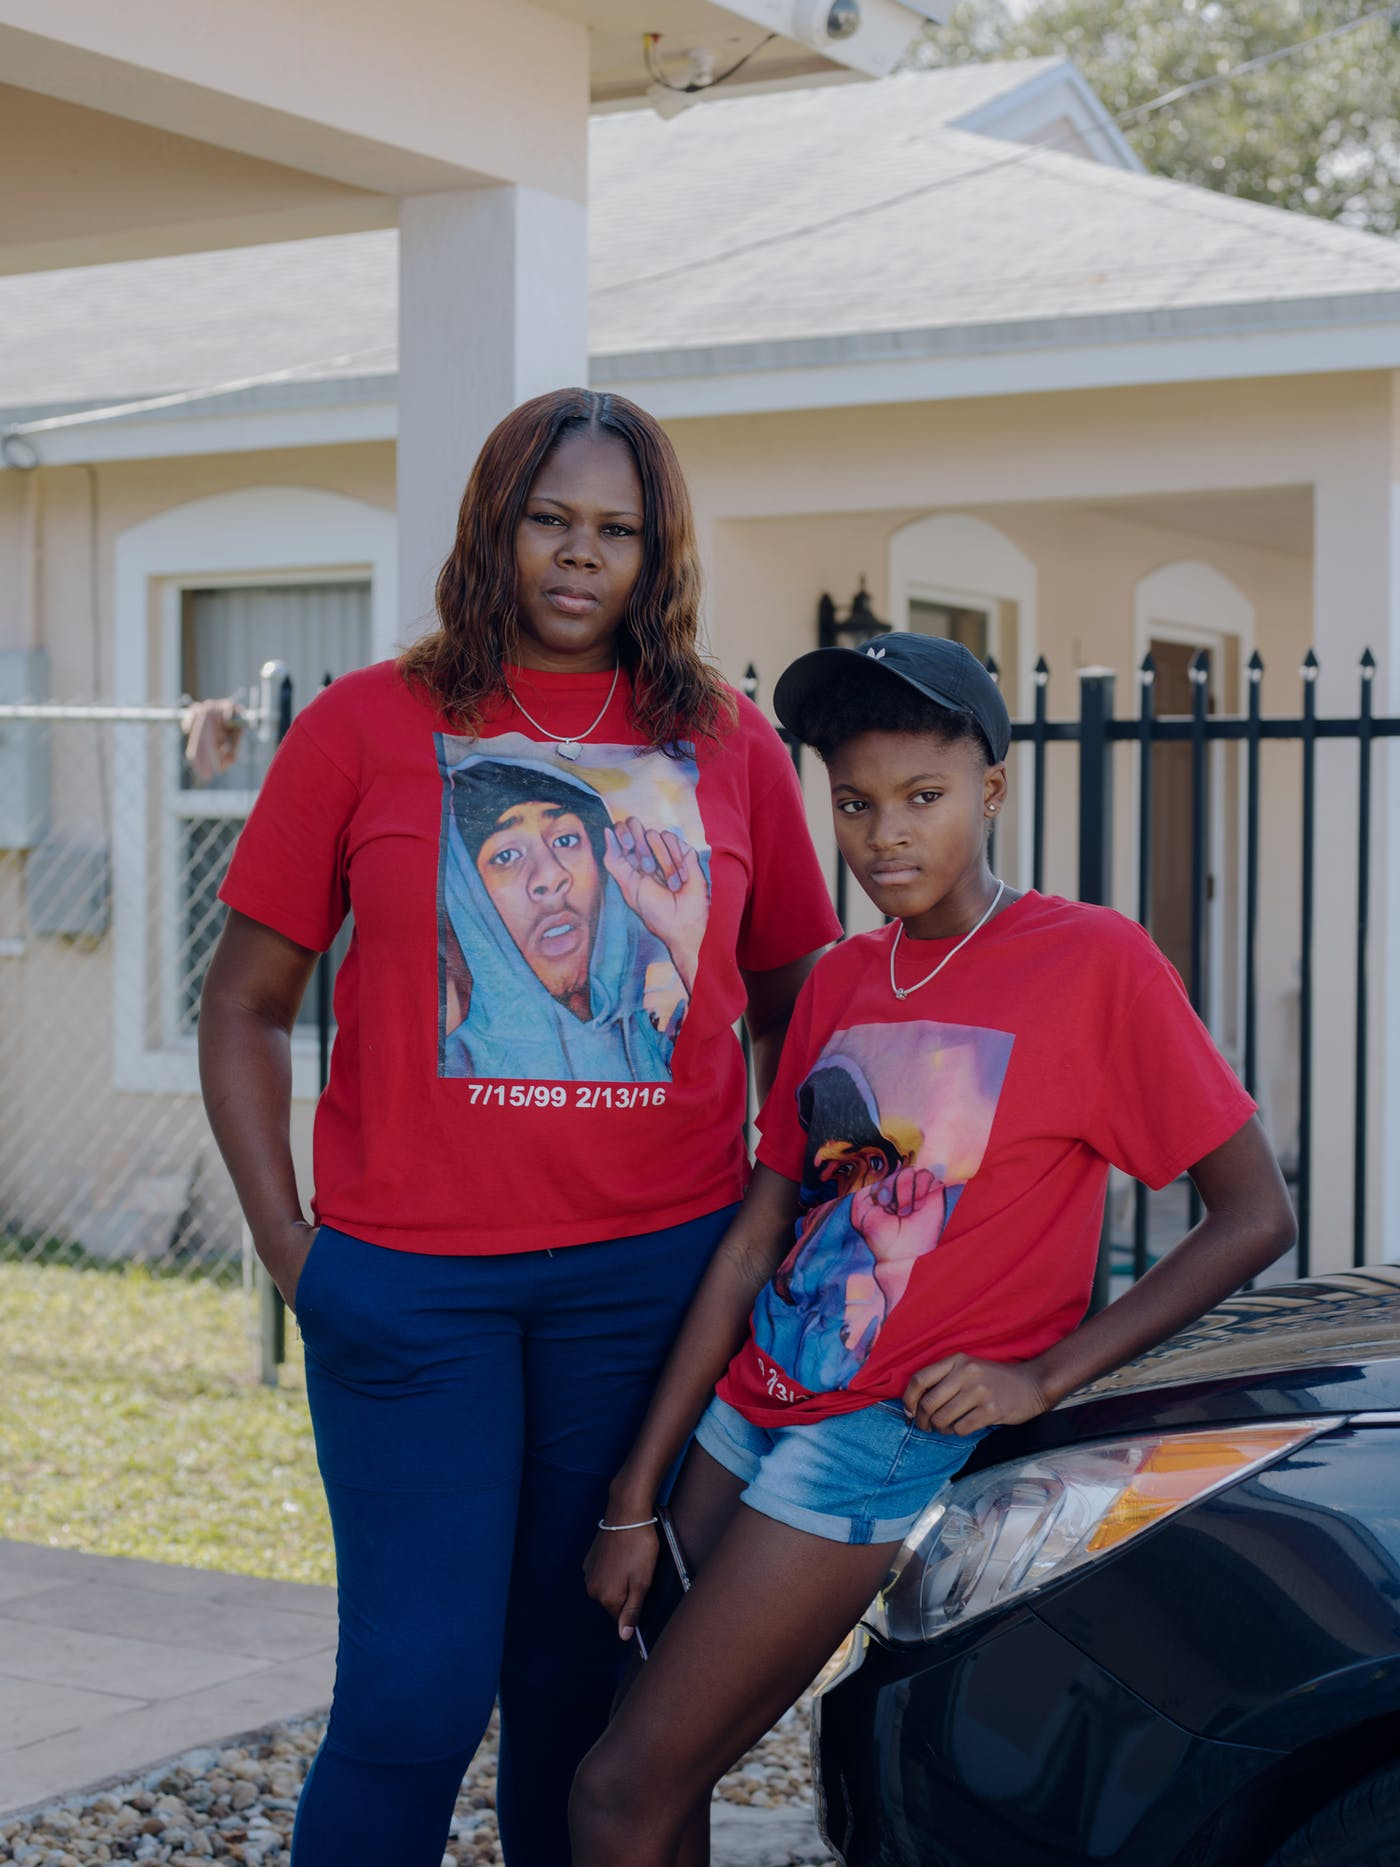 1e0d749e1 Sharita Warren, 36, and her daughter Se'Maya Simon, 13, wearing T-shirts  that memorialize Warren's son, La'Nard Wilcher, who was shot and killed  several ...